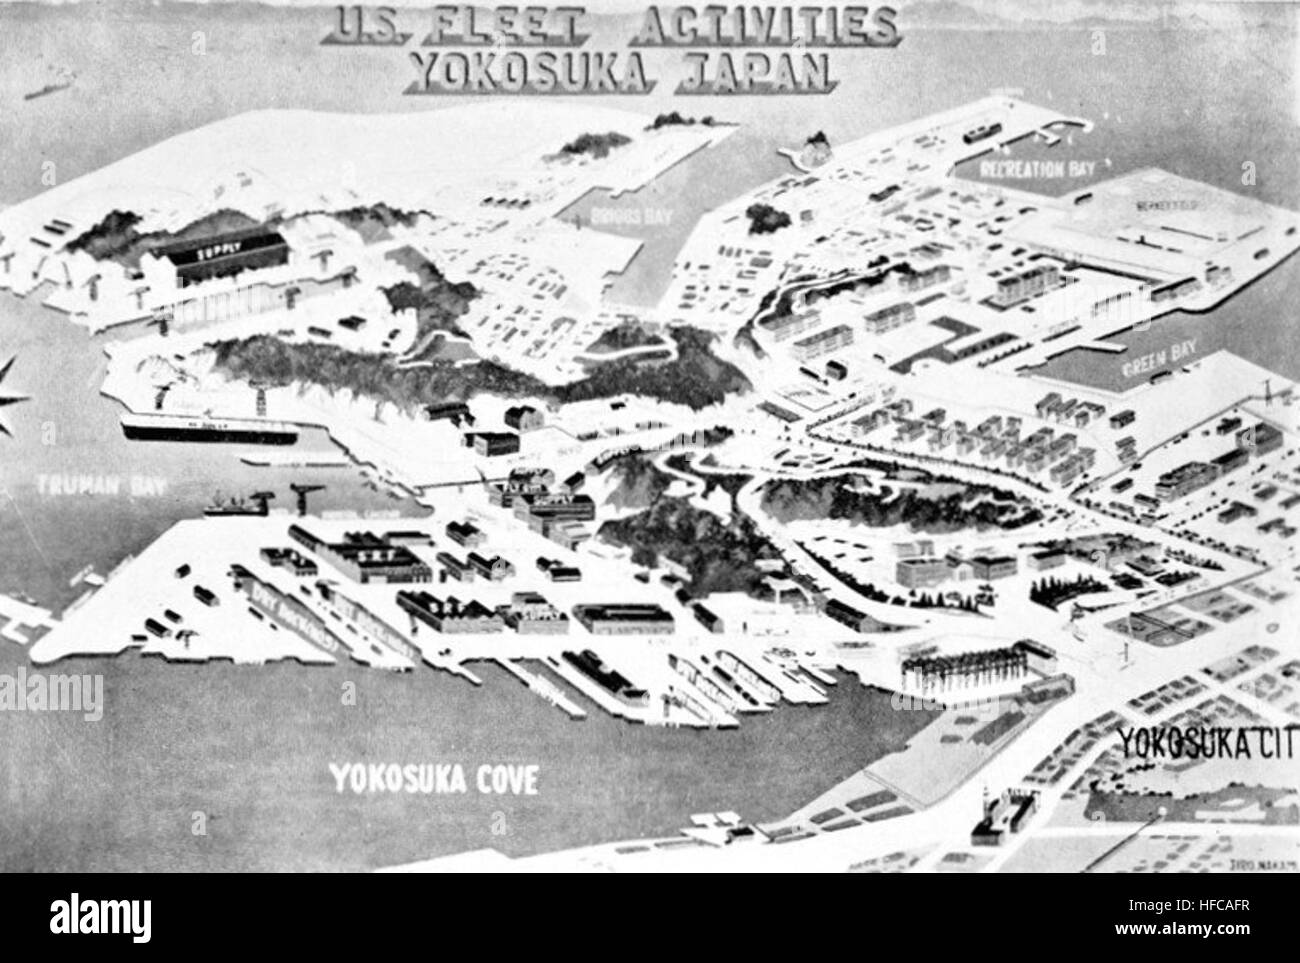 Map Of Us Navy Fleet Activites Yokosuka Japan In 1957 Stock Photo